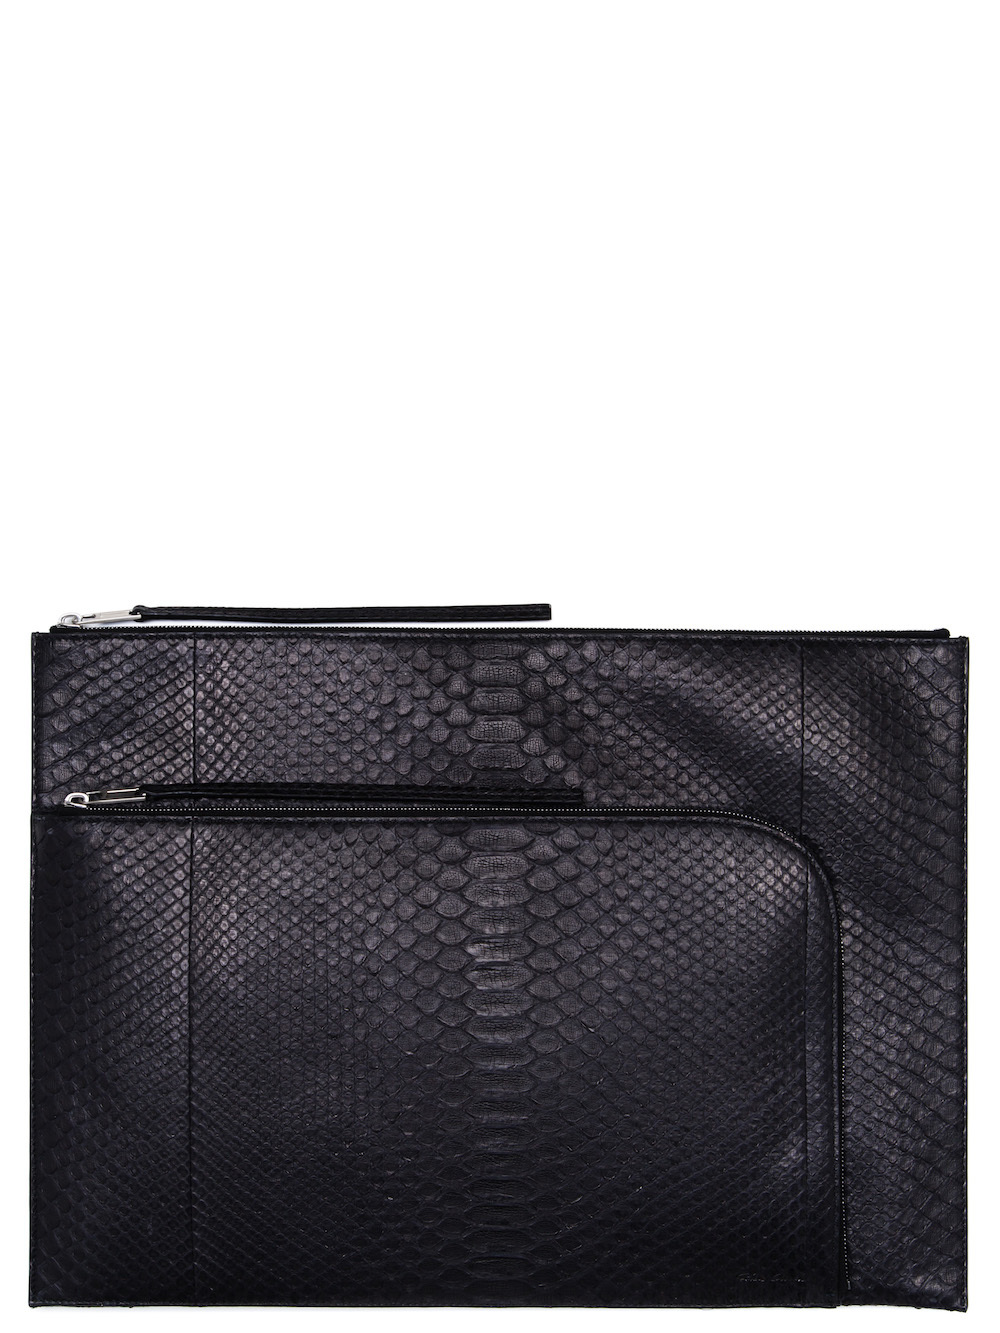 RICK OWENS ZIPPED COMPUTER POUCH IN BLACK PYTHON